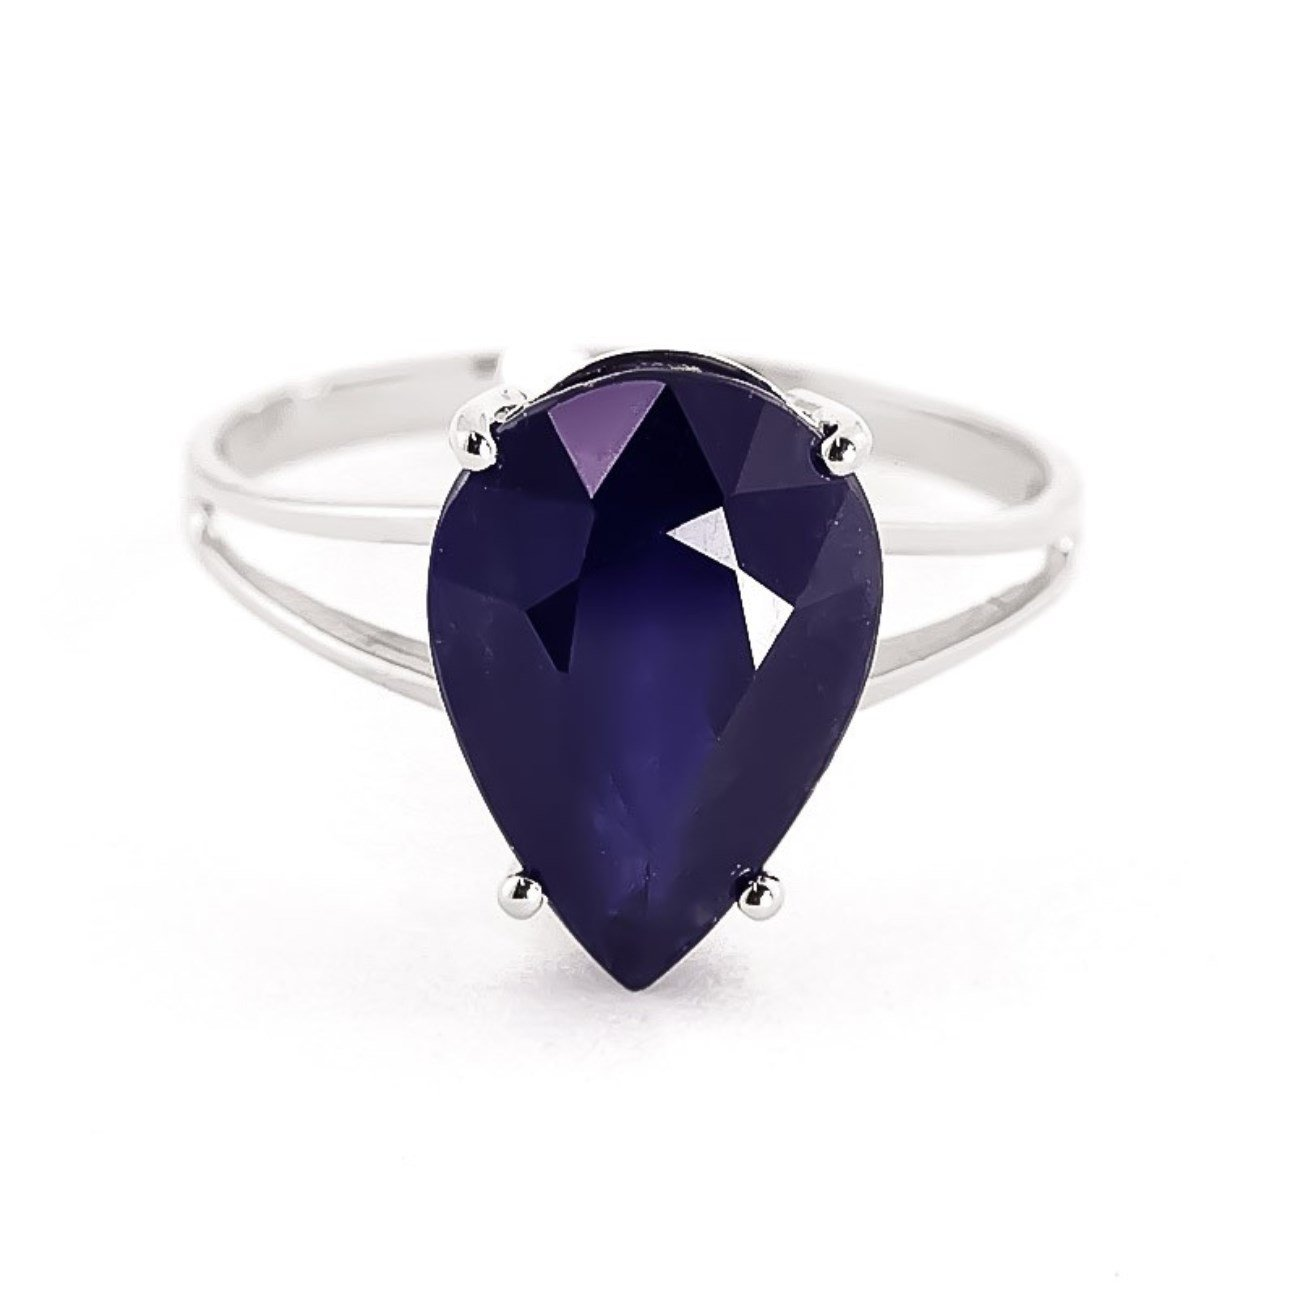 4.65 ctw 14K Solid White Gold Pear Shape Sapphire September Birthstone Ring 4305-W